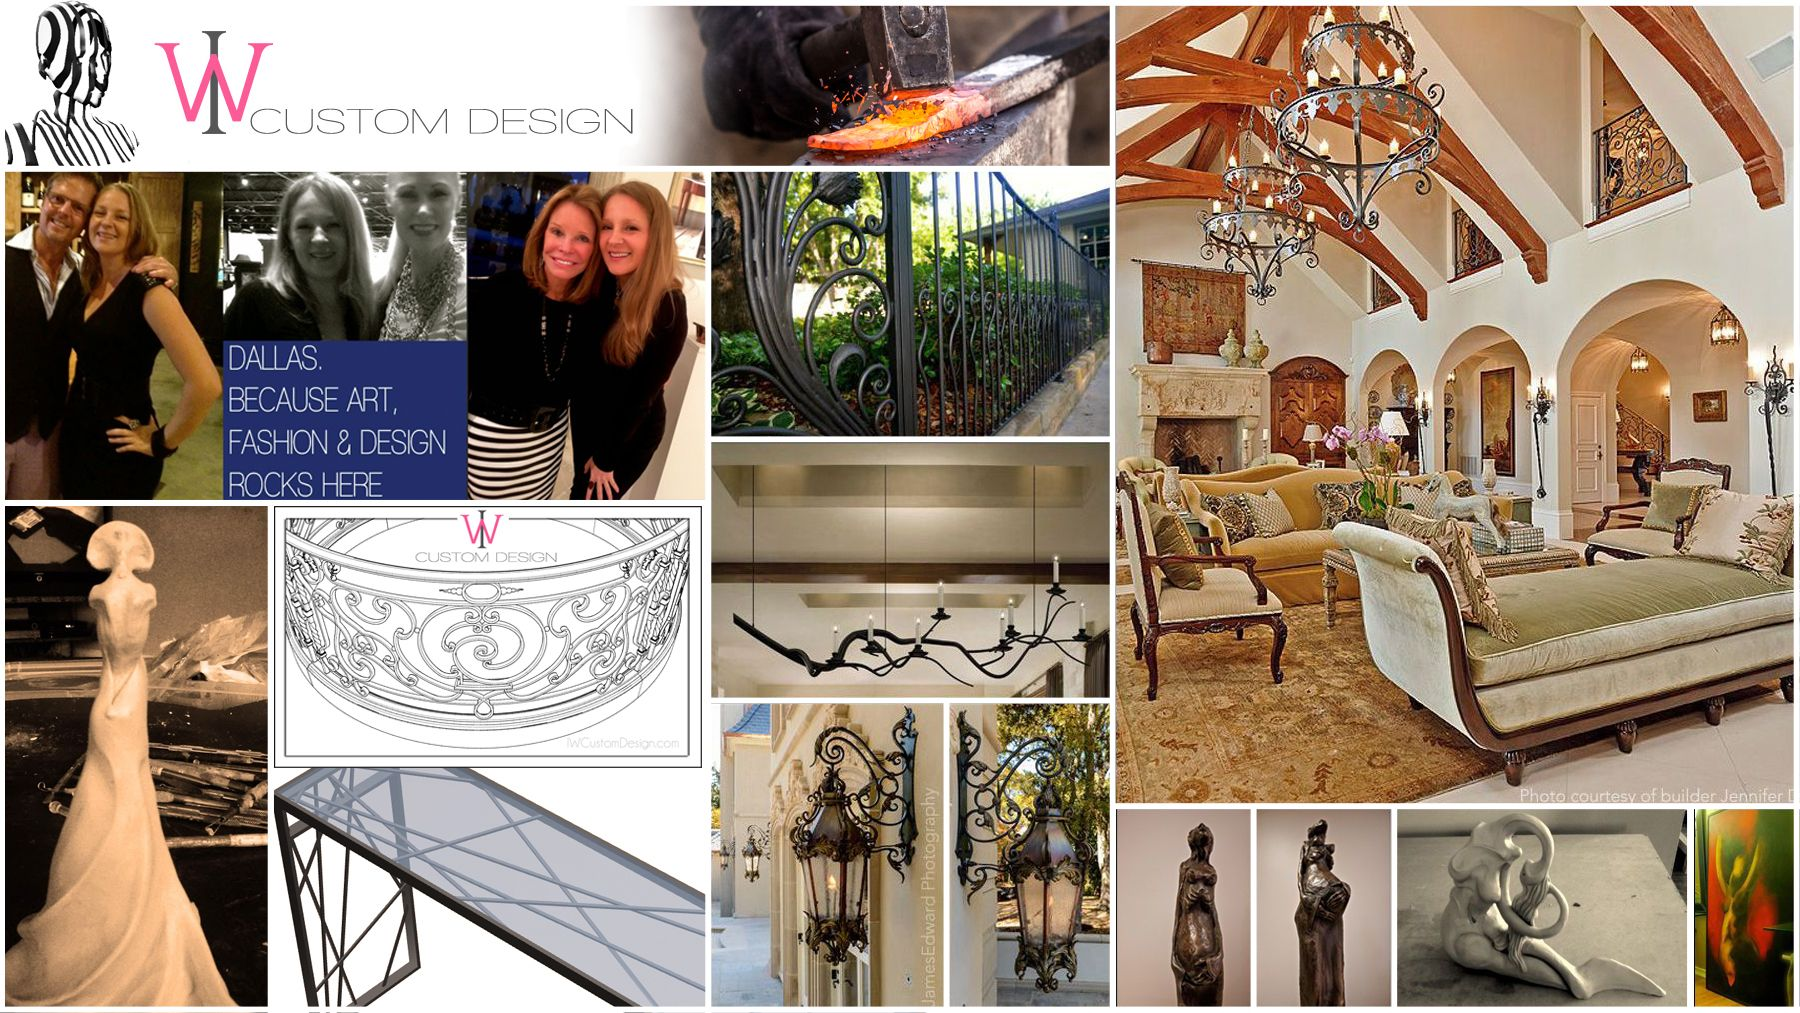 Art and Function: Sculpture, Paintings, Ornamental Ironwork and Lighting by Dallas artist and designer Izabela Wojcik.